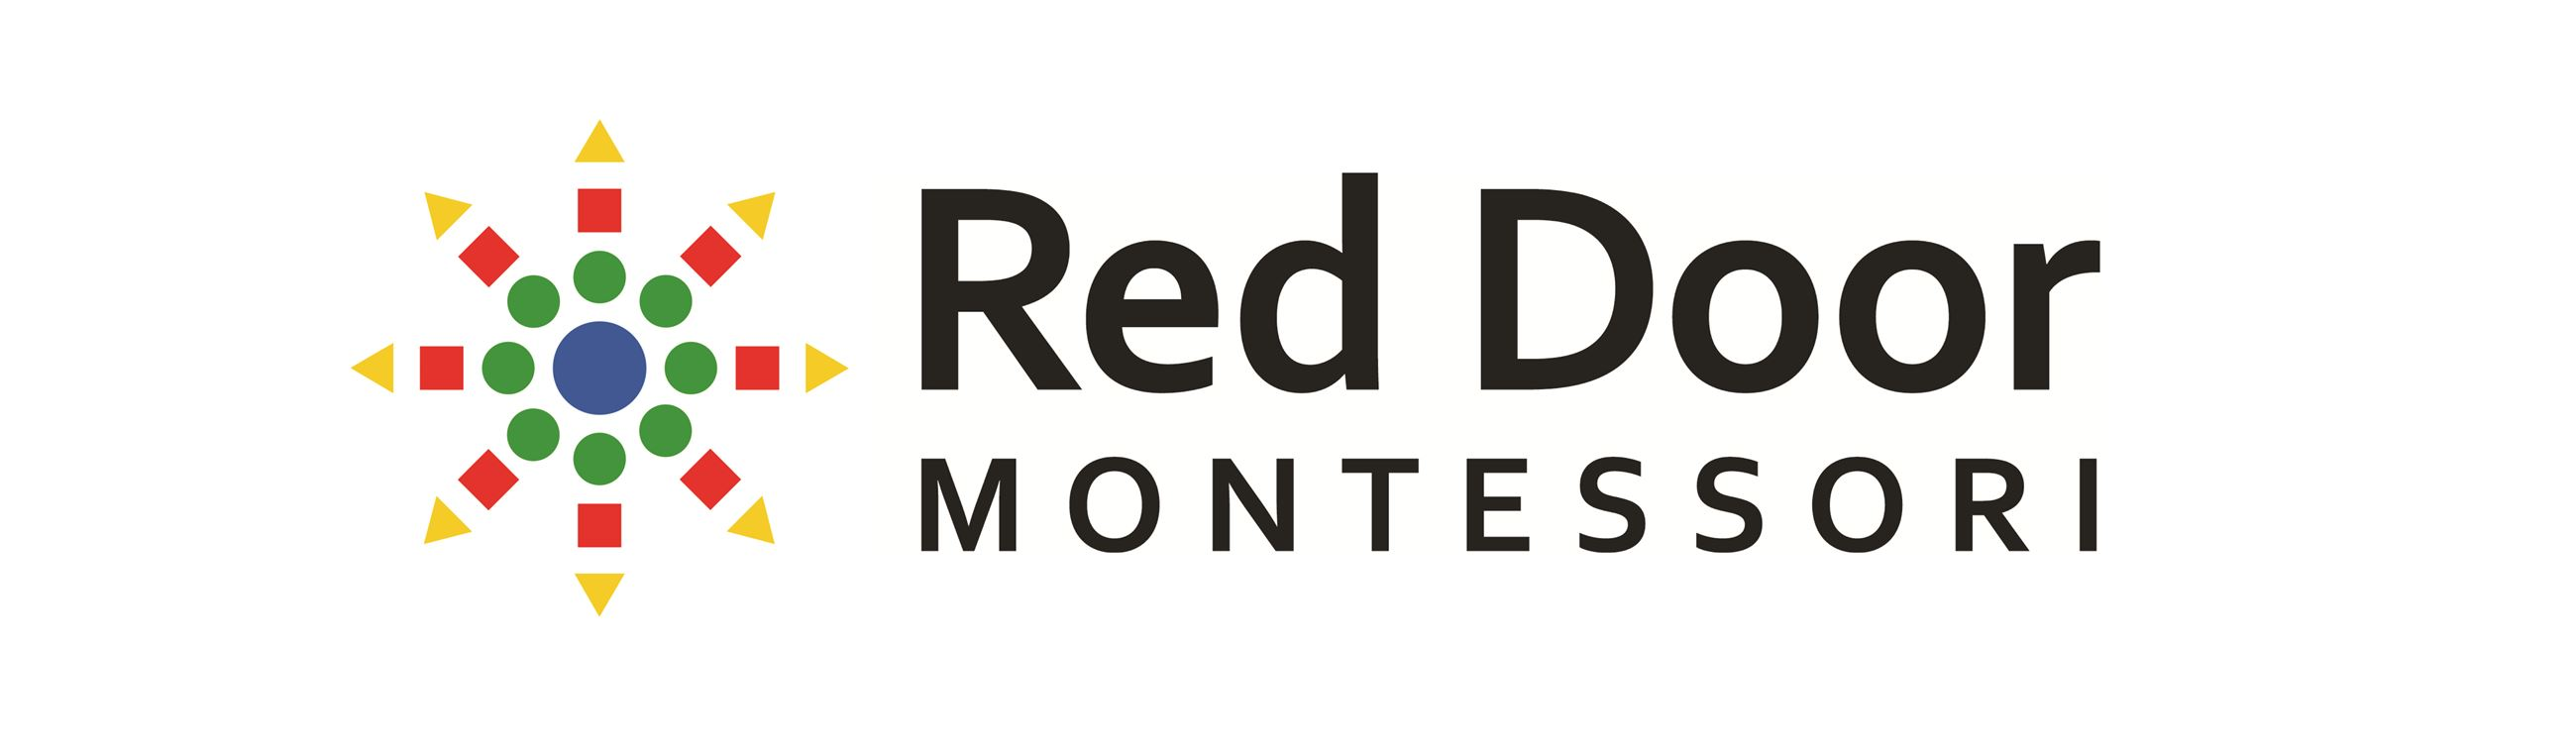 Red Door Montessori website